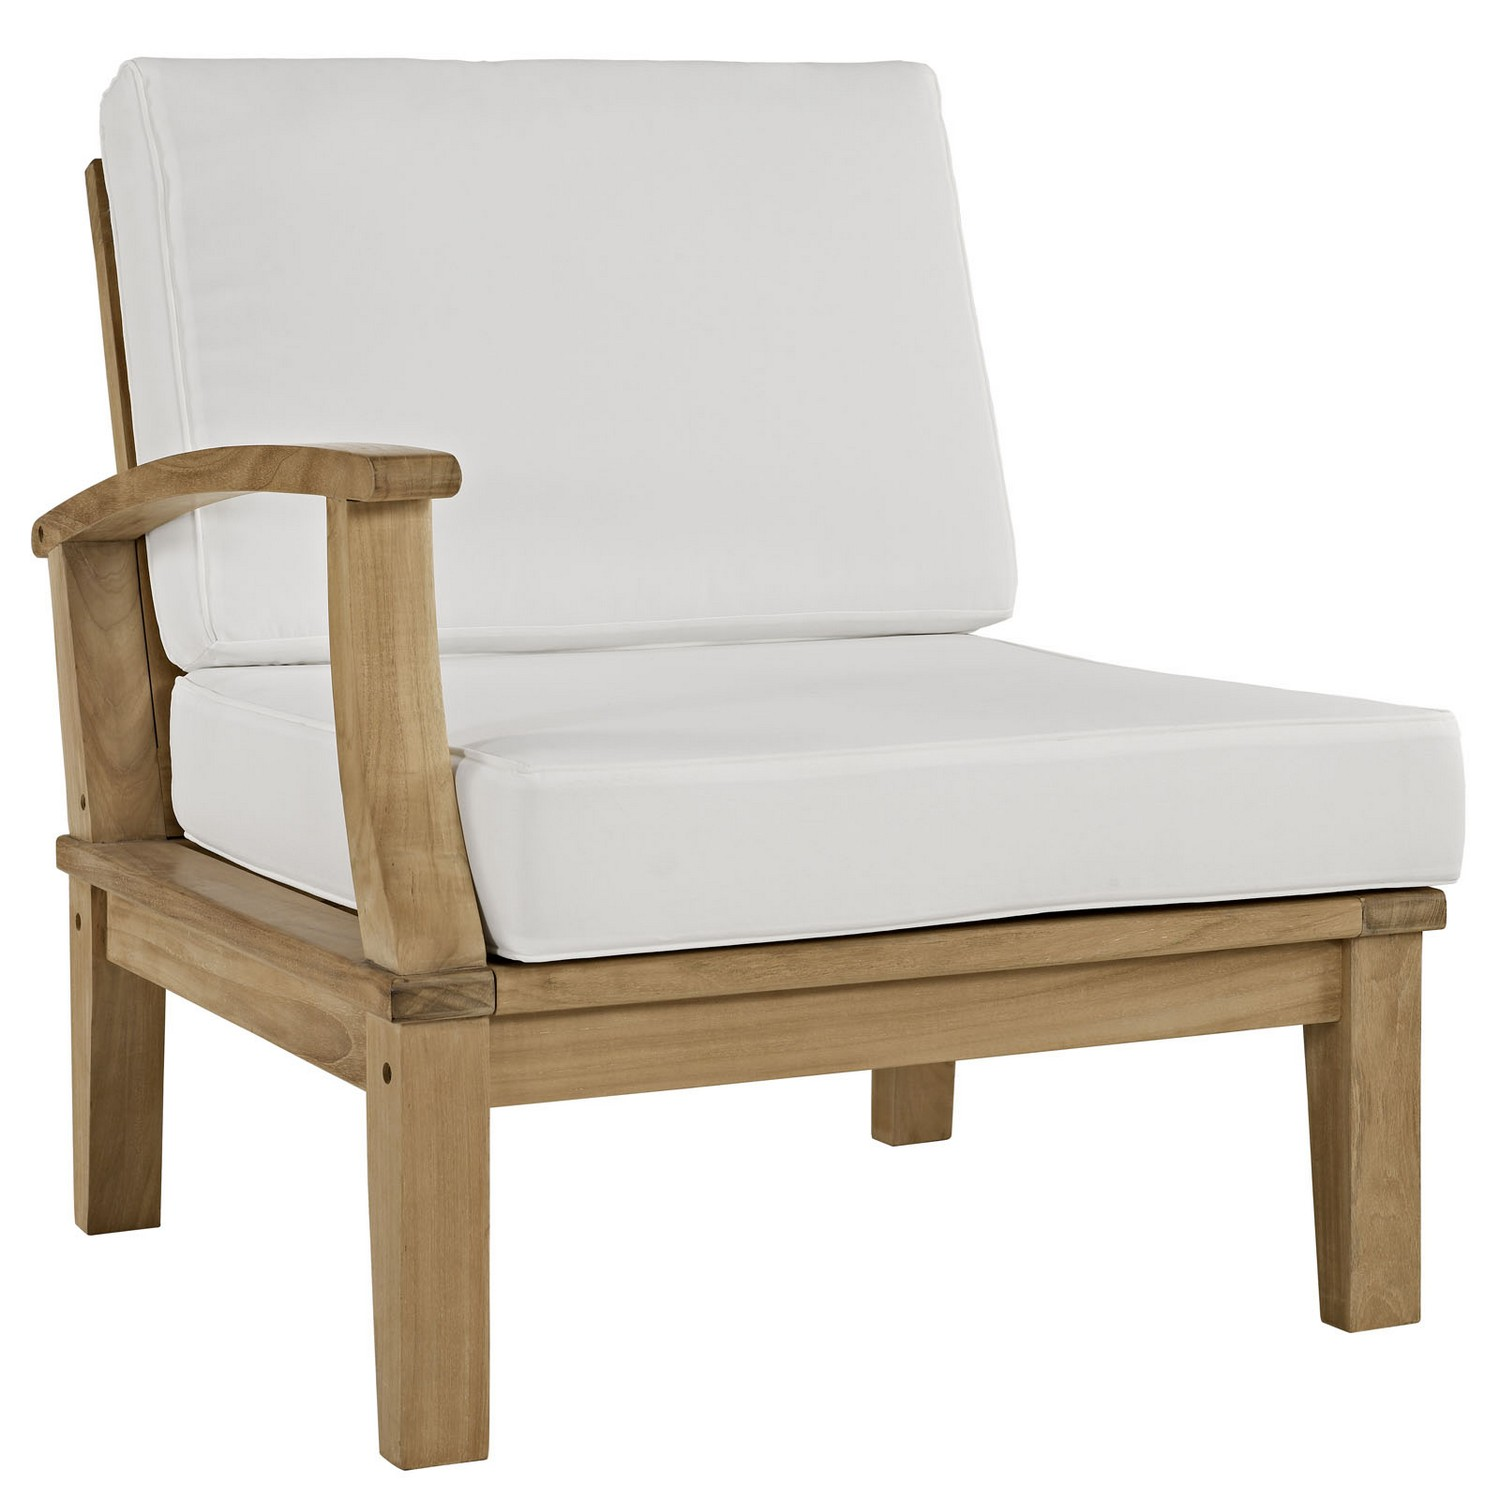 Modway Marina 7 Piece Outdoor Patio Teak Sofa Set - Natural White